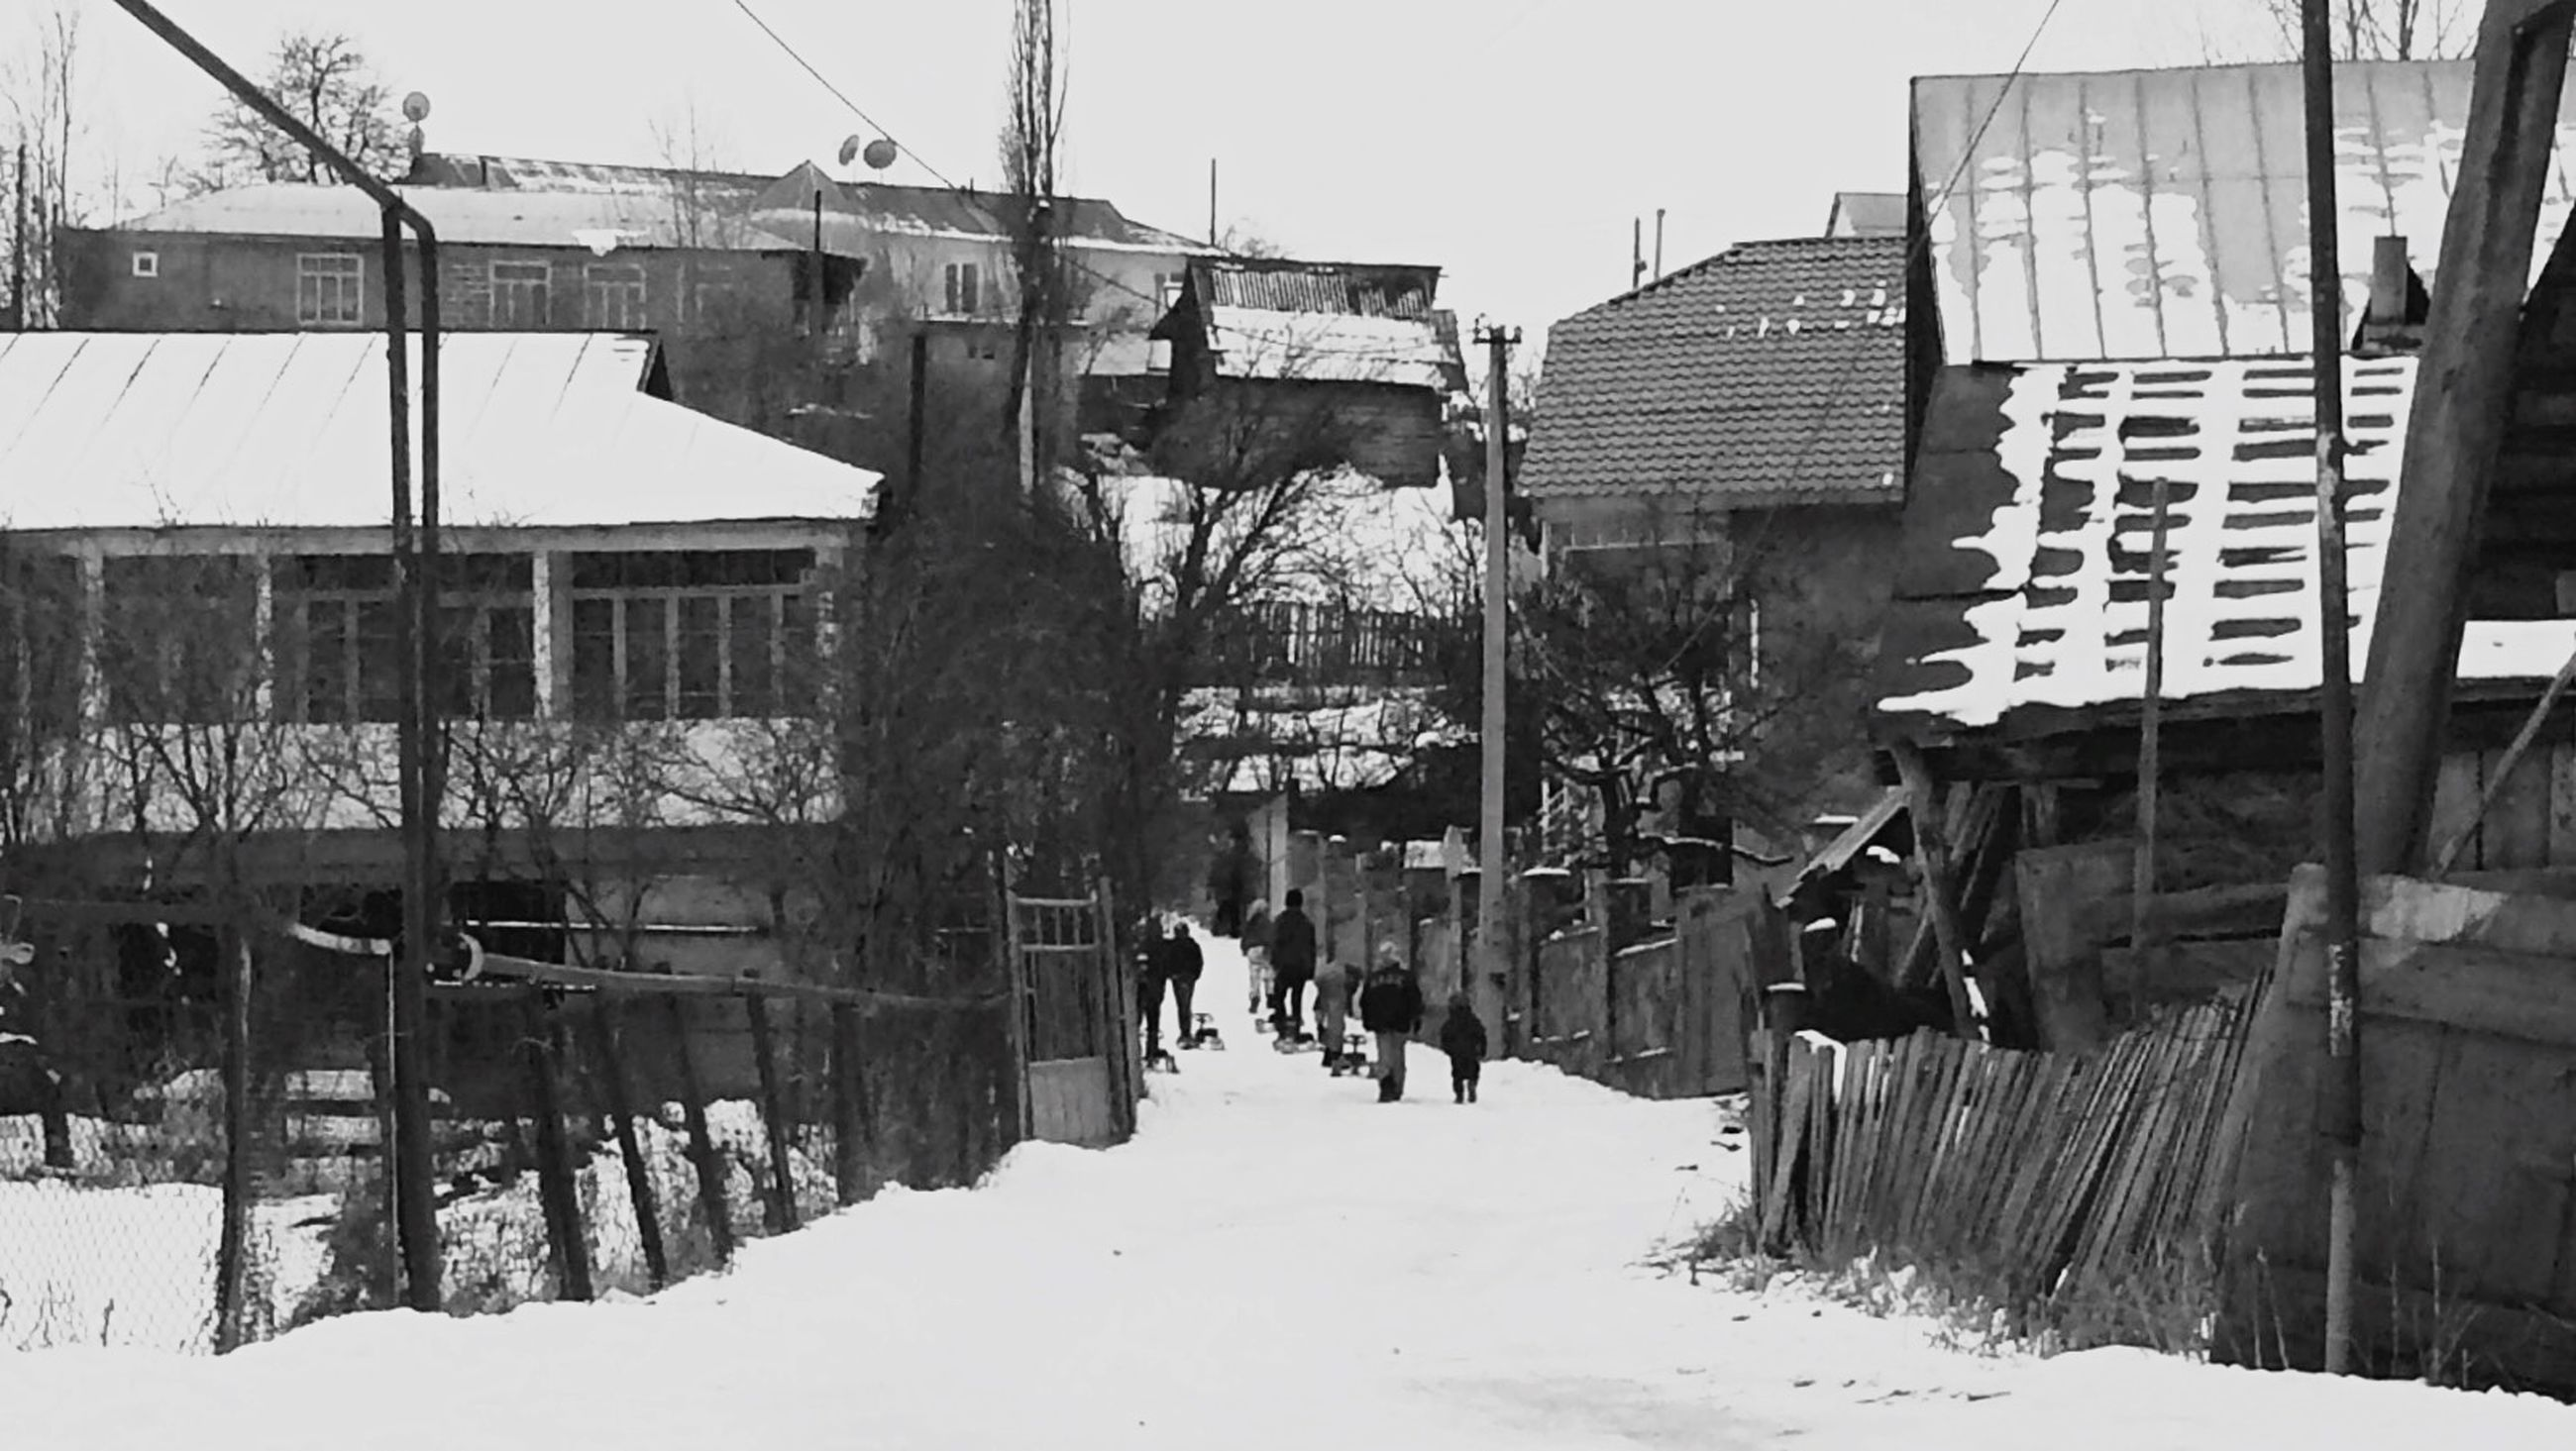 built structure, architecture, building exterior, snow, winter, cold temperature, season, house, sky, day, men, outdoors, covering, weather, residential structure, walking, incidental people, city, street